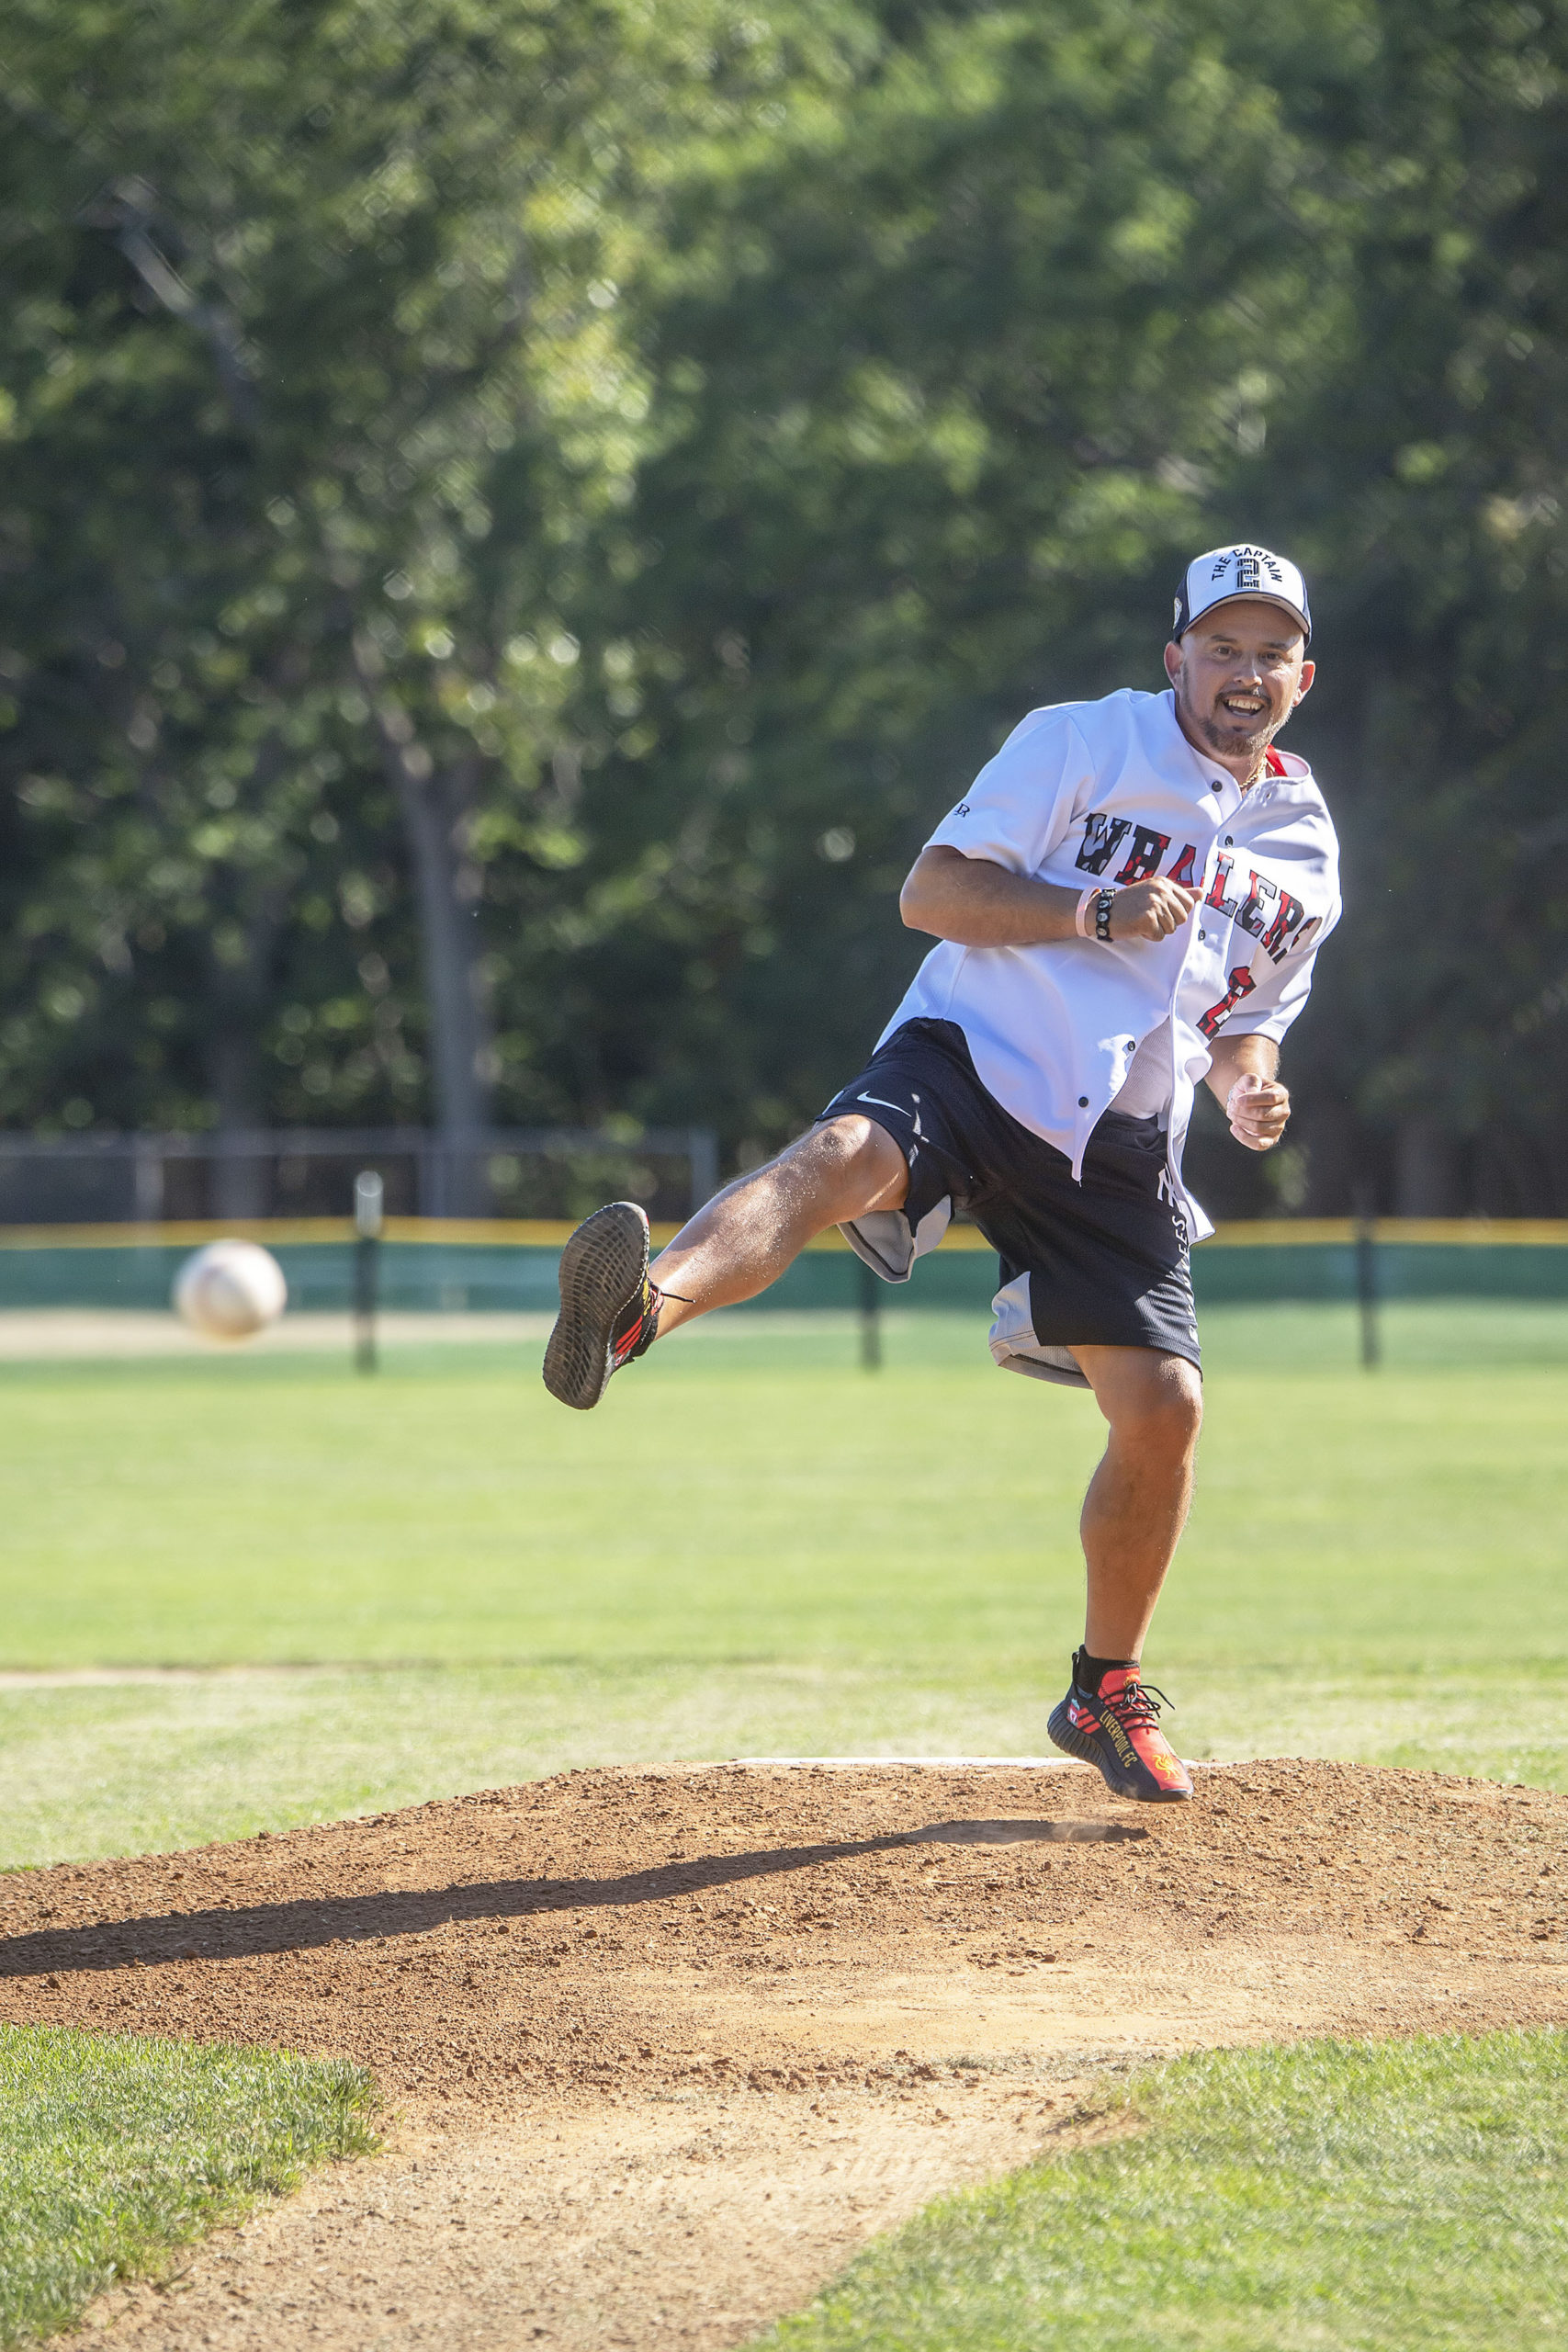 Longtime Sag Harbor Schools employee Gjon Bersiha was honored by throwing out the first pitch of the 2021 Hamptons Collegiate Baseball League season.